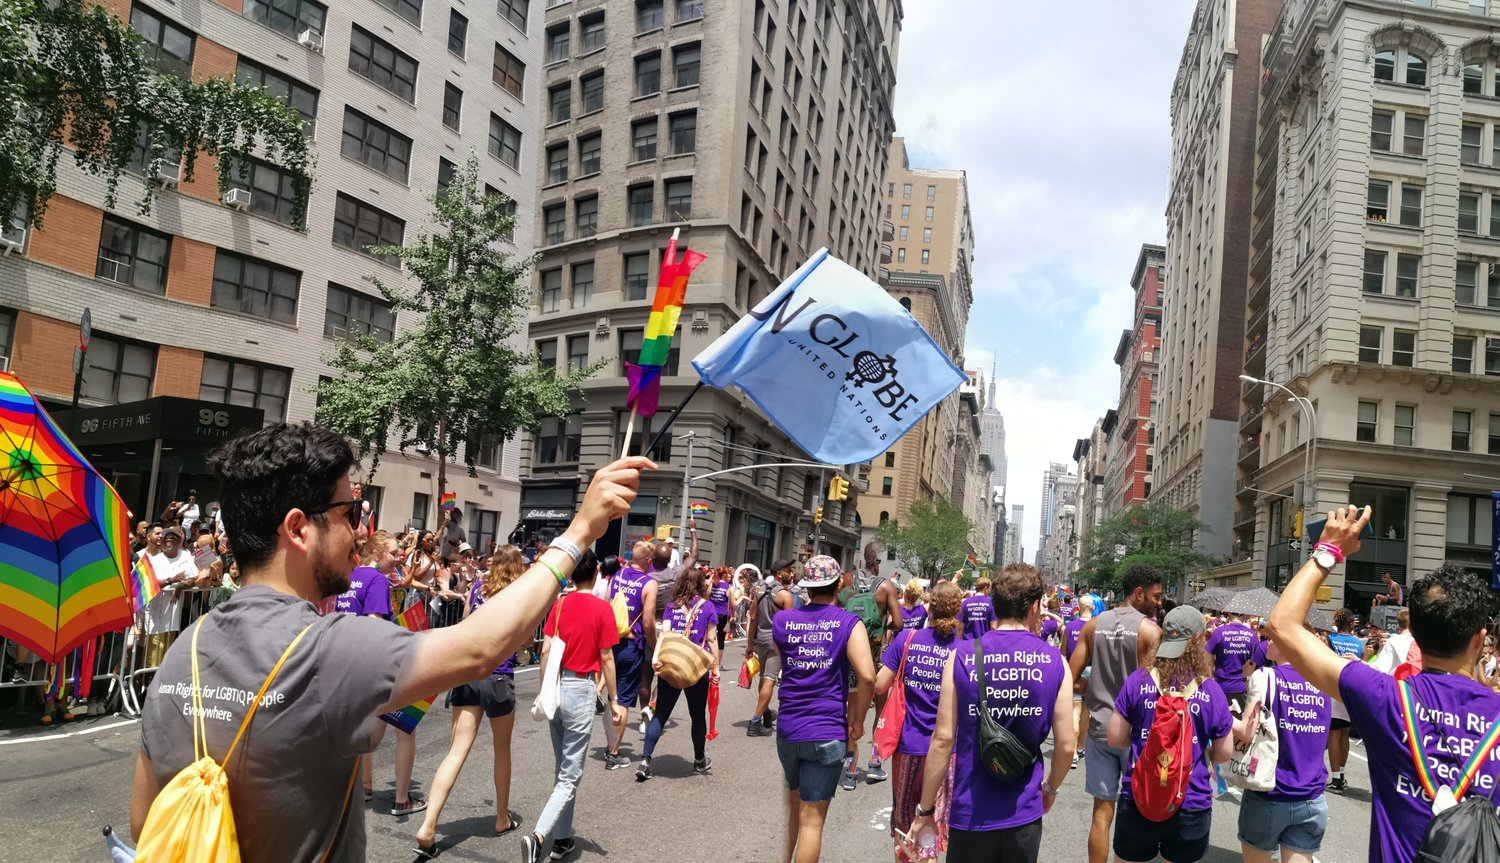 March with us in New York City - New York will mark the 50th anniversary of the Stonewall Riots by hosting World Pride, the centerpiece of Pride celebrations worldwide. Pride is an opportunity to take a stance against discrimination and violence towards people of the LGBTIQ+ community worldwide.